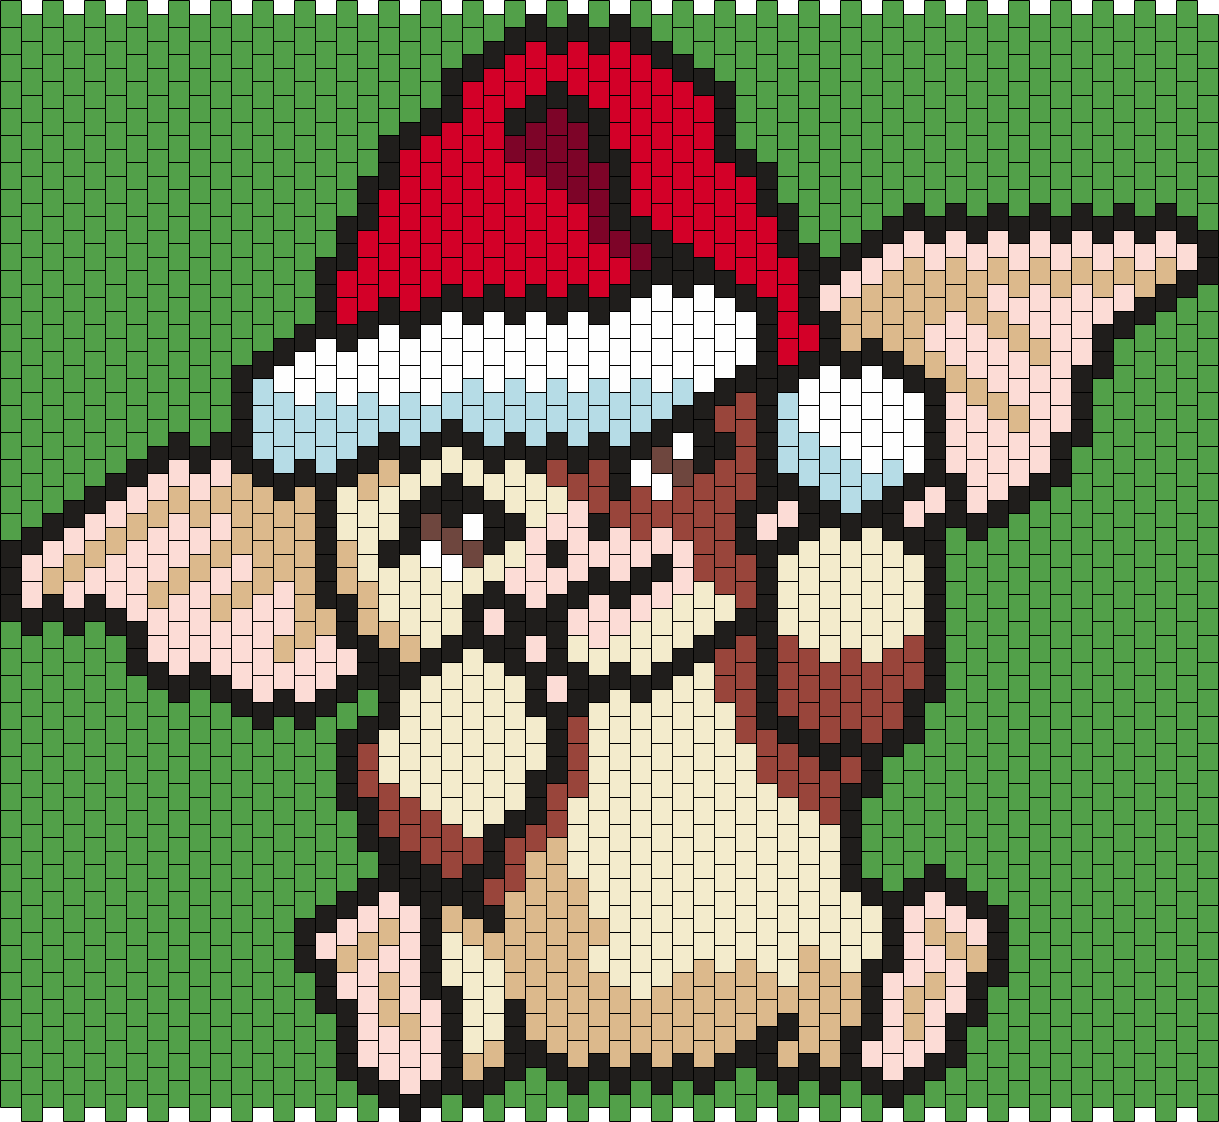 Gizmo In A Santa Hat (from Gremlins)